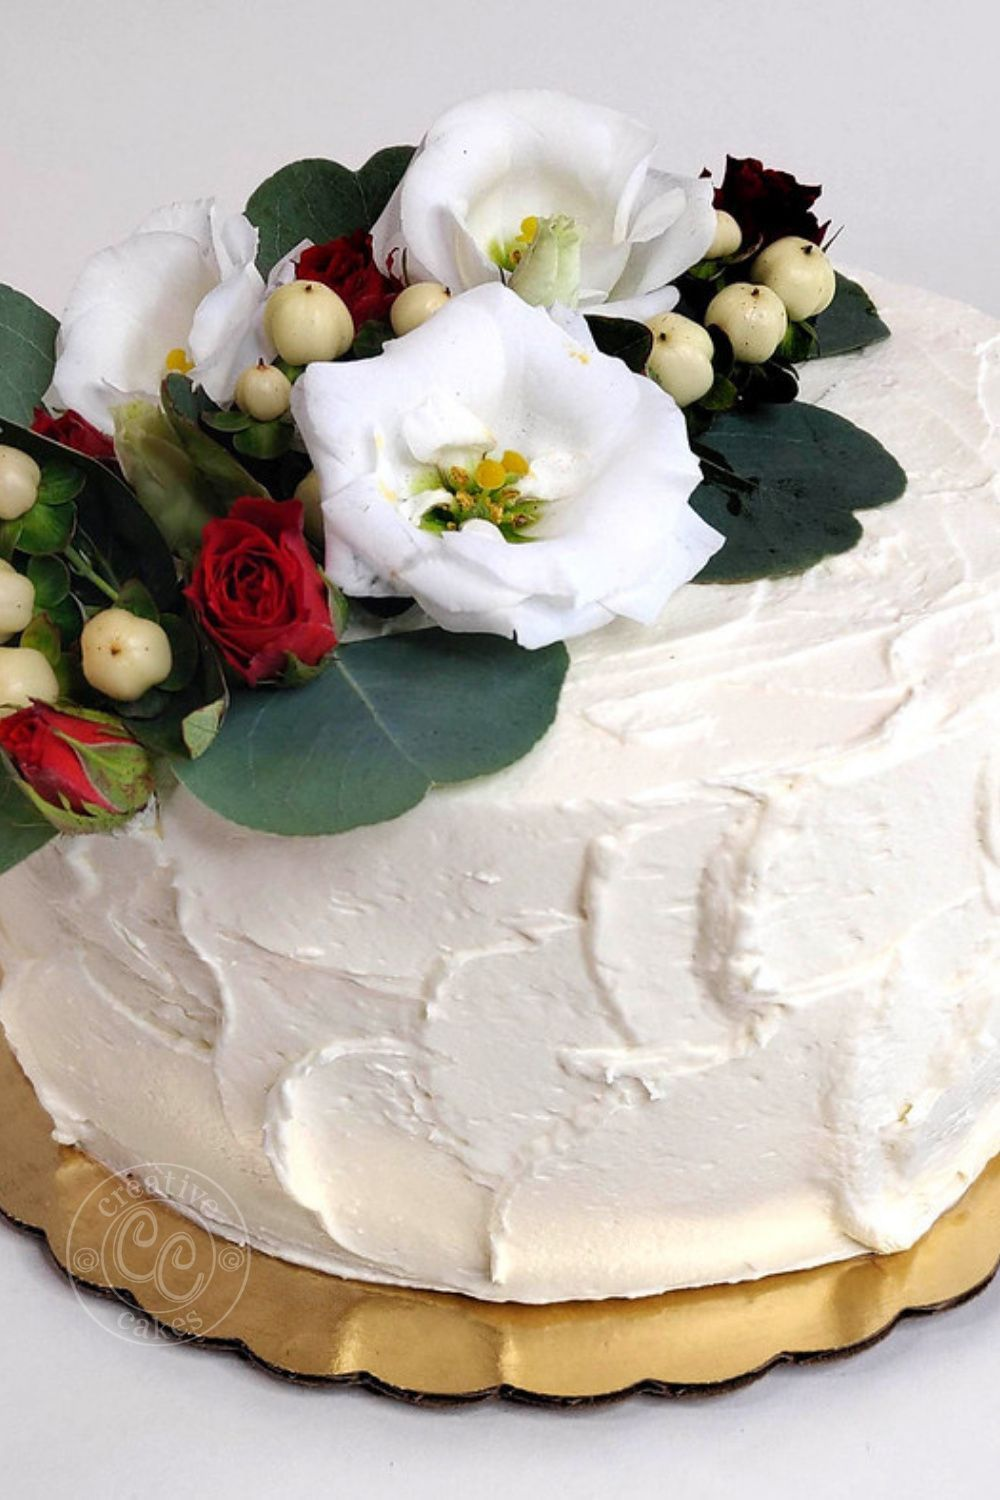 White Cake With Rustic Icing And Florals In 2020 Bakery Cakes Creative Cakes Cake